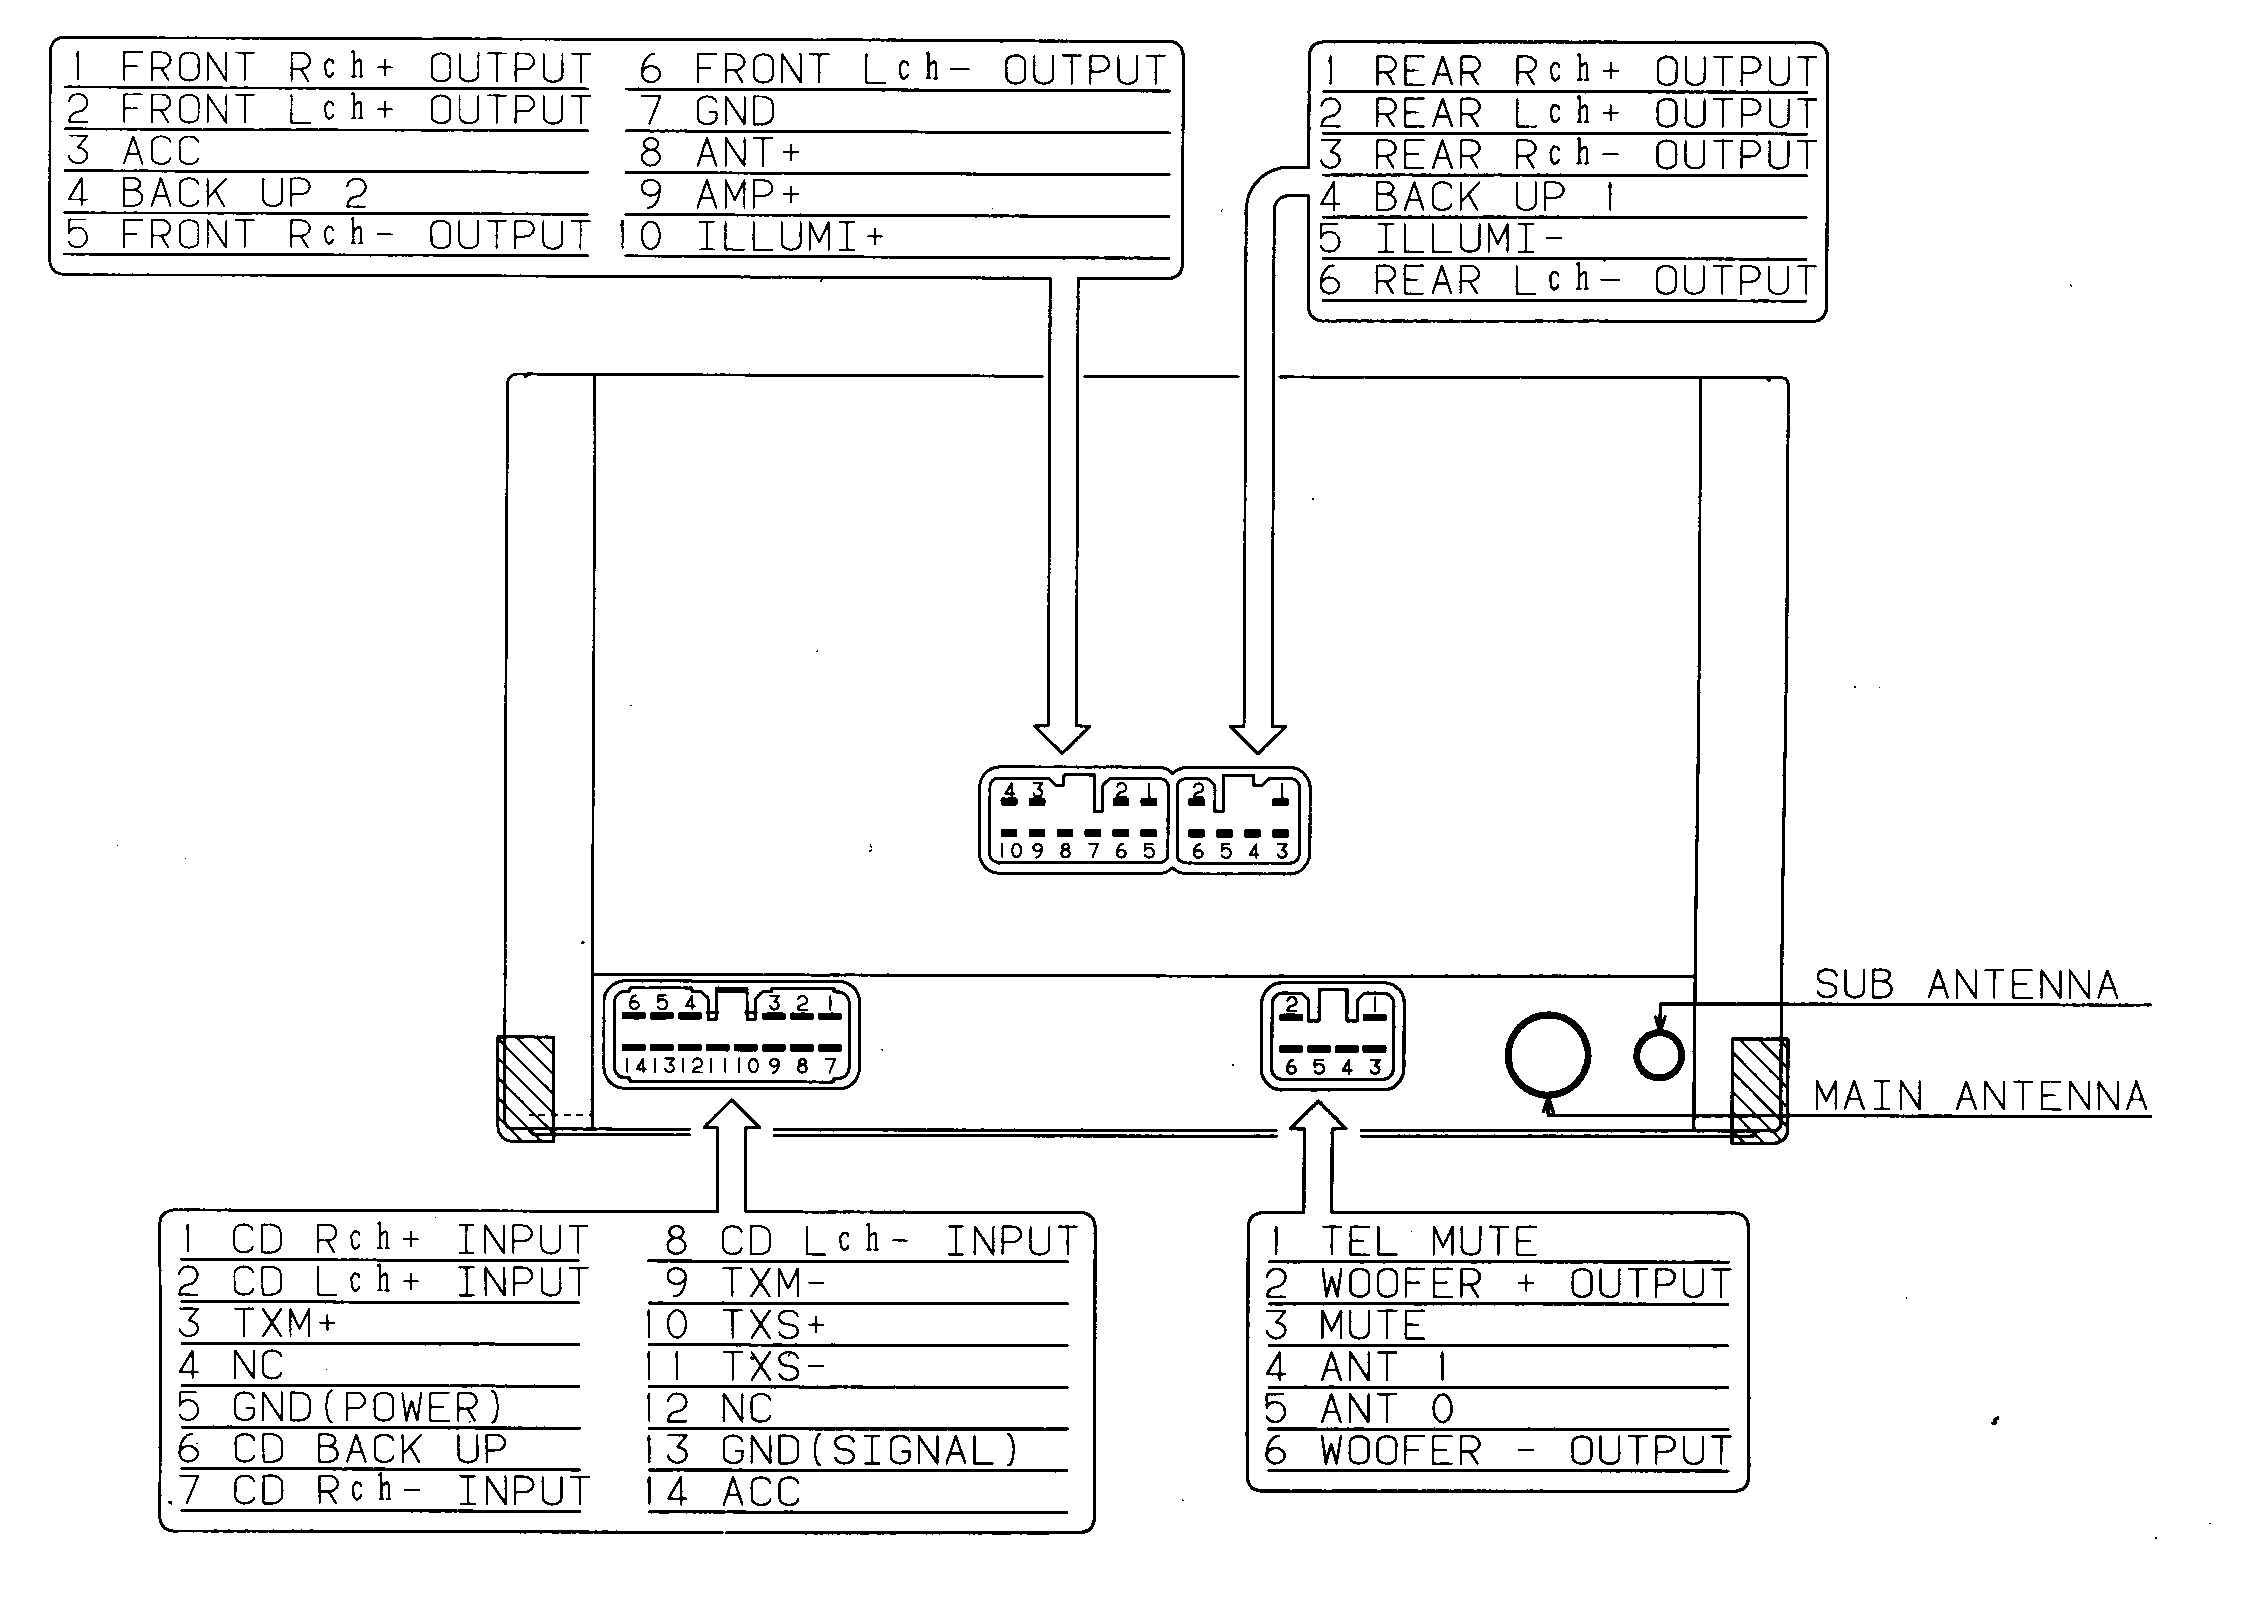 Lexus car stereo wiring diagram harness pinout connector wire lexus rx330 radio wiring diagram lexus rx330 parts diagram lexus wiring harness pigtails at n-0.co